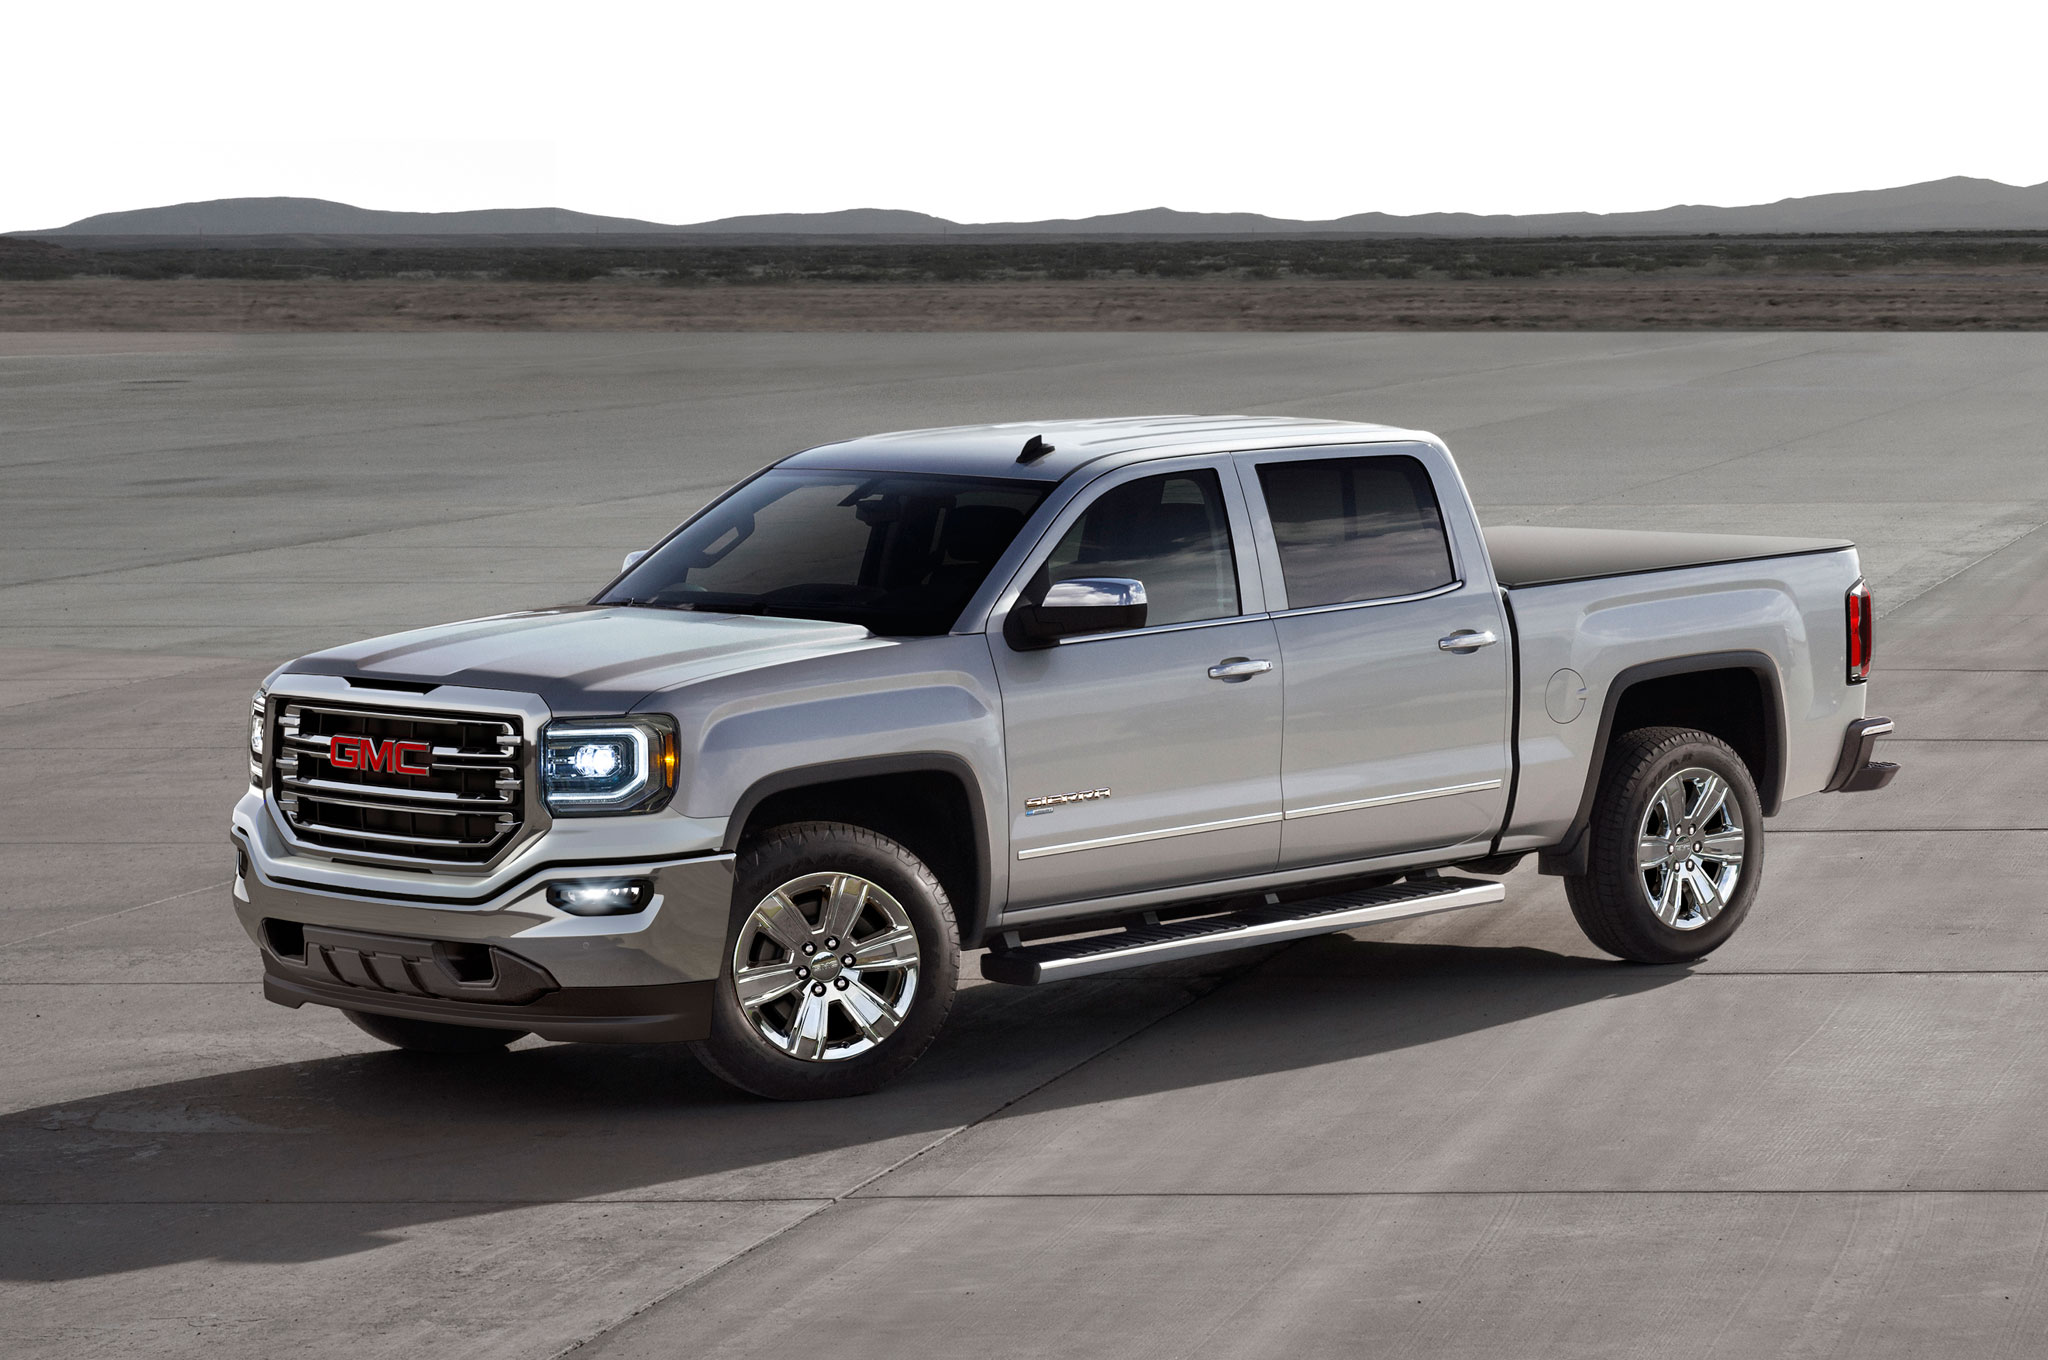 2016 chevrolet silverado gmc sierra add eassist hybrid 12 sciox Image collections